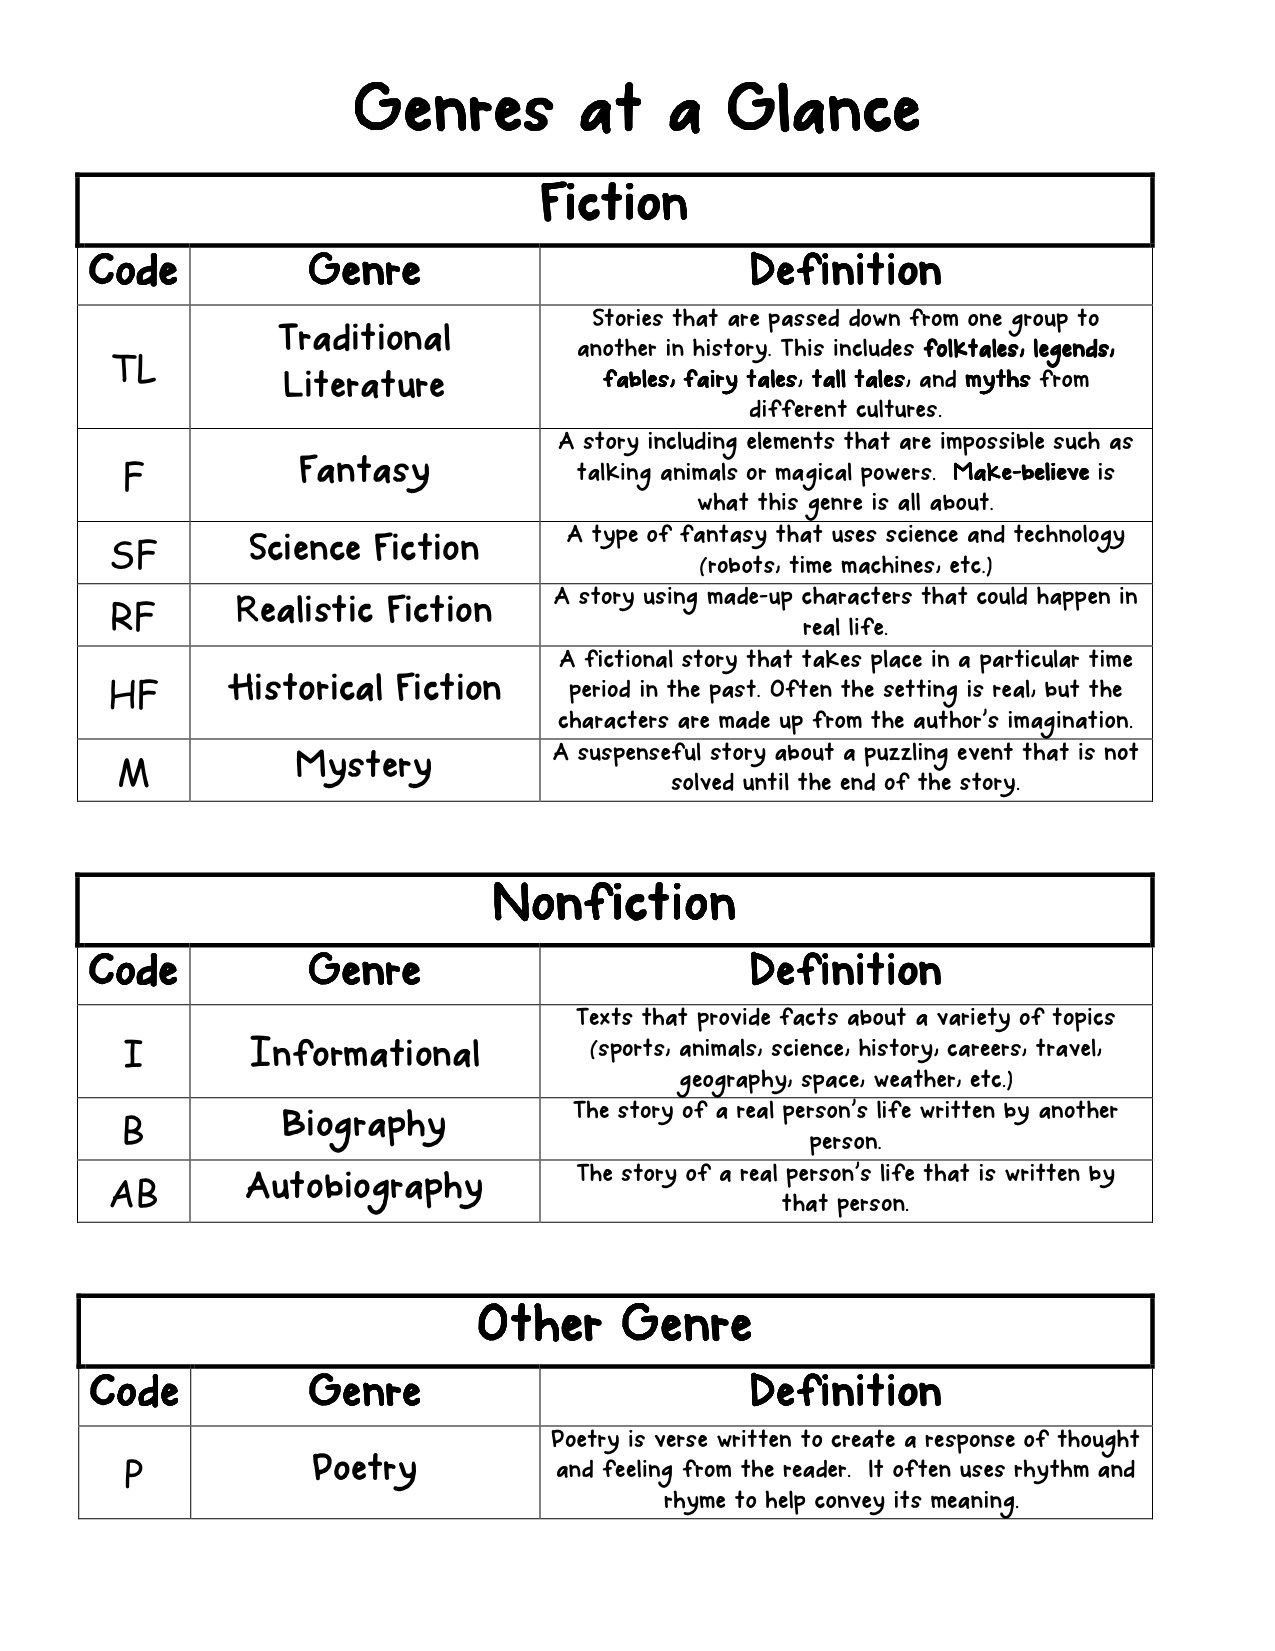 small resolution of Genre Worksheet 3rd Grade Genres at A Glance for Reader S Notebook   40  book challenge